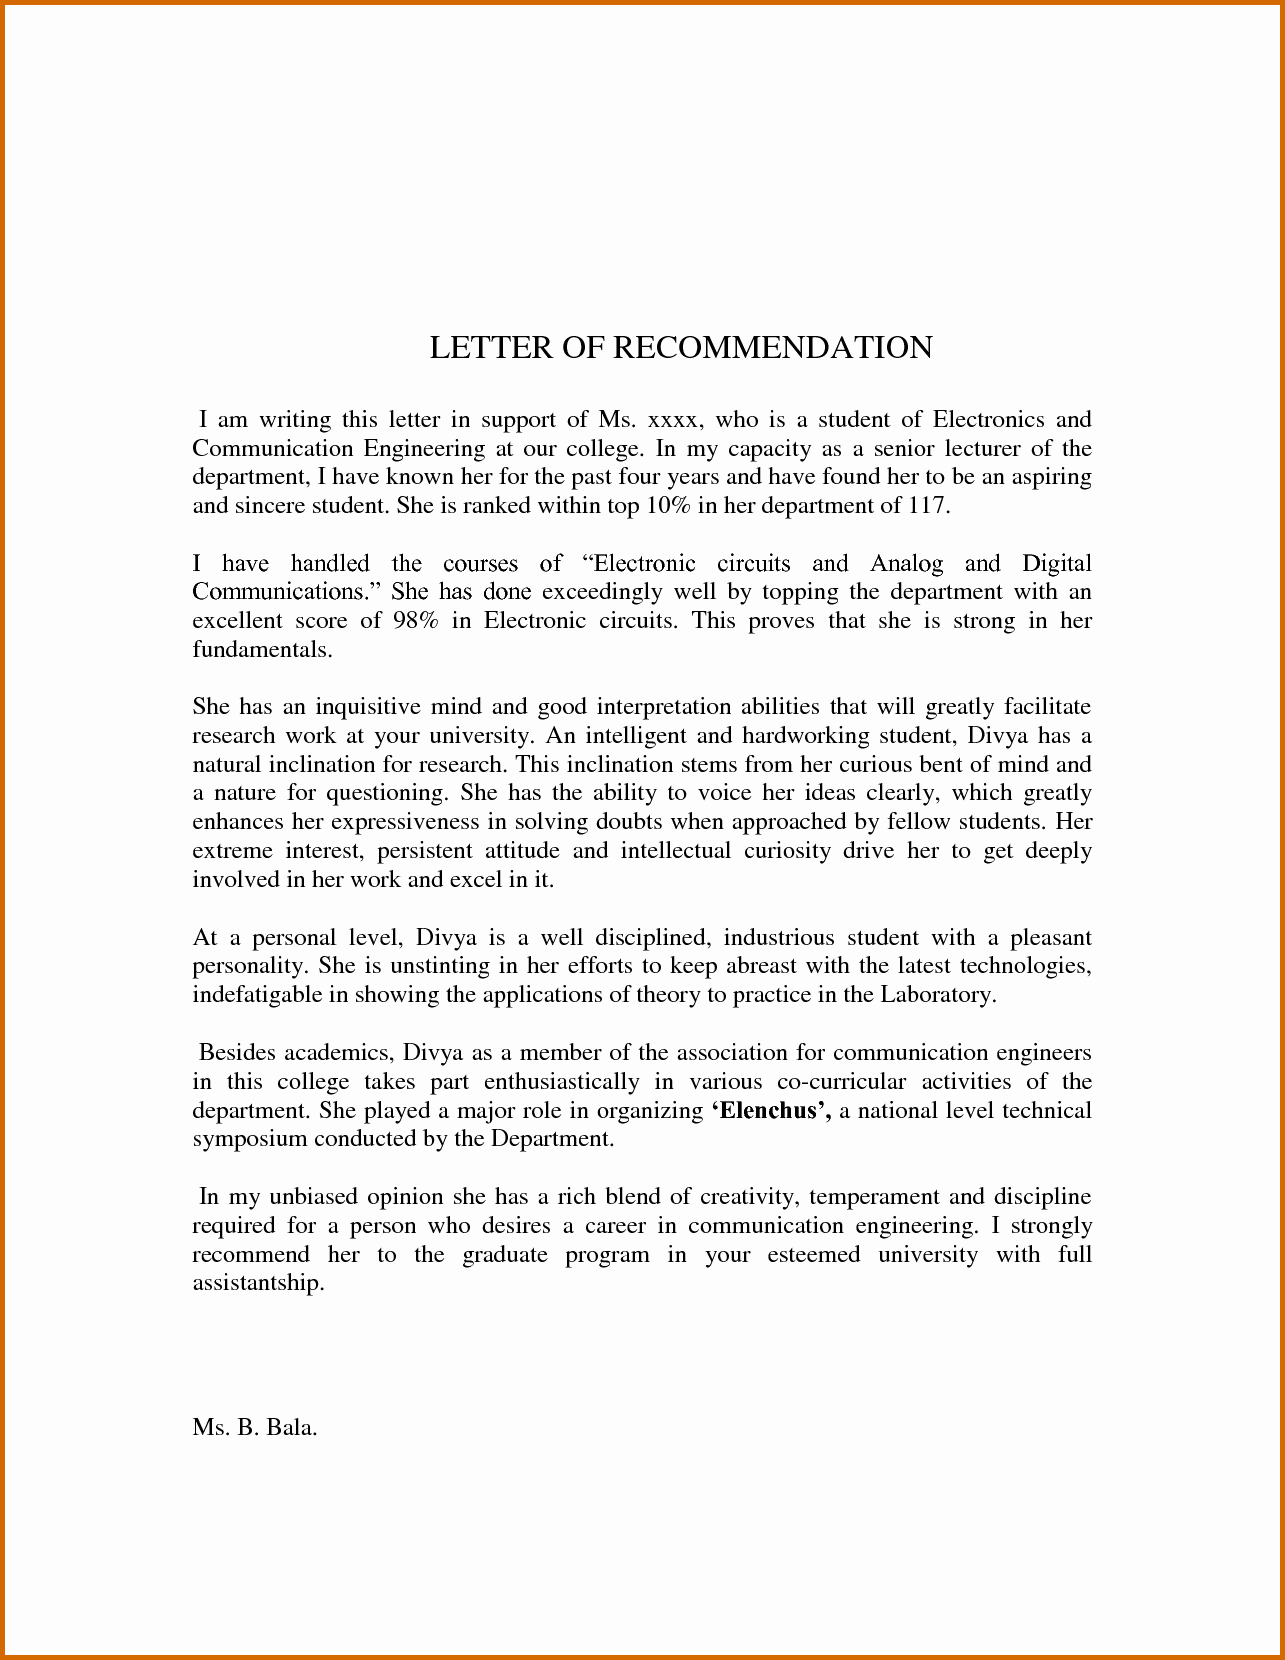 Recommendation Letter format for Student Awesome 8 Sample Re Mendation Letter for Student